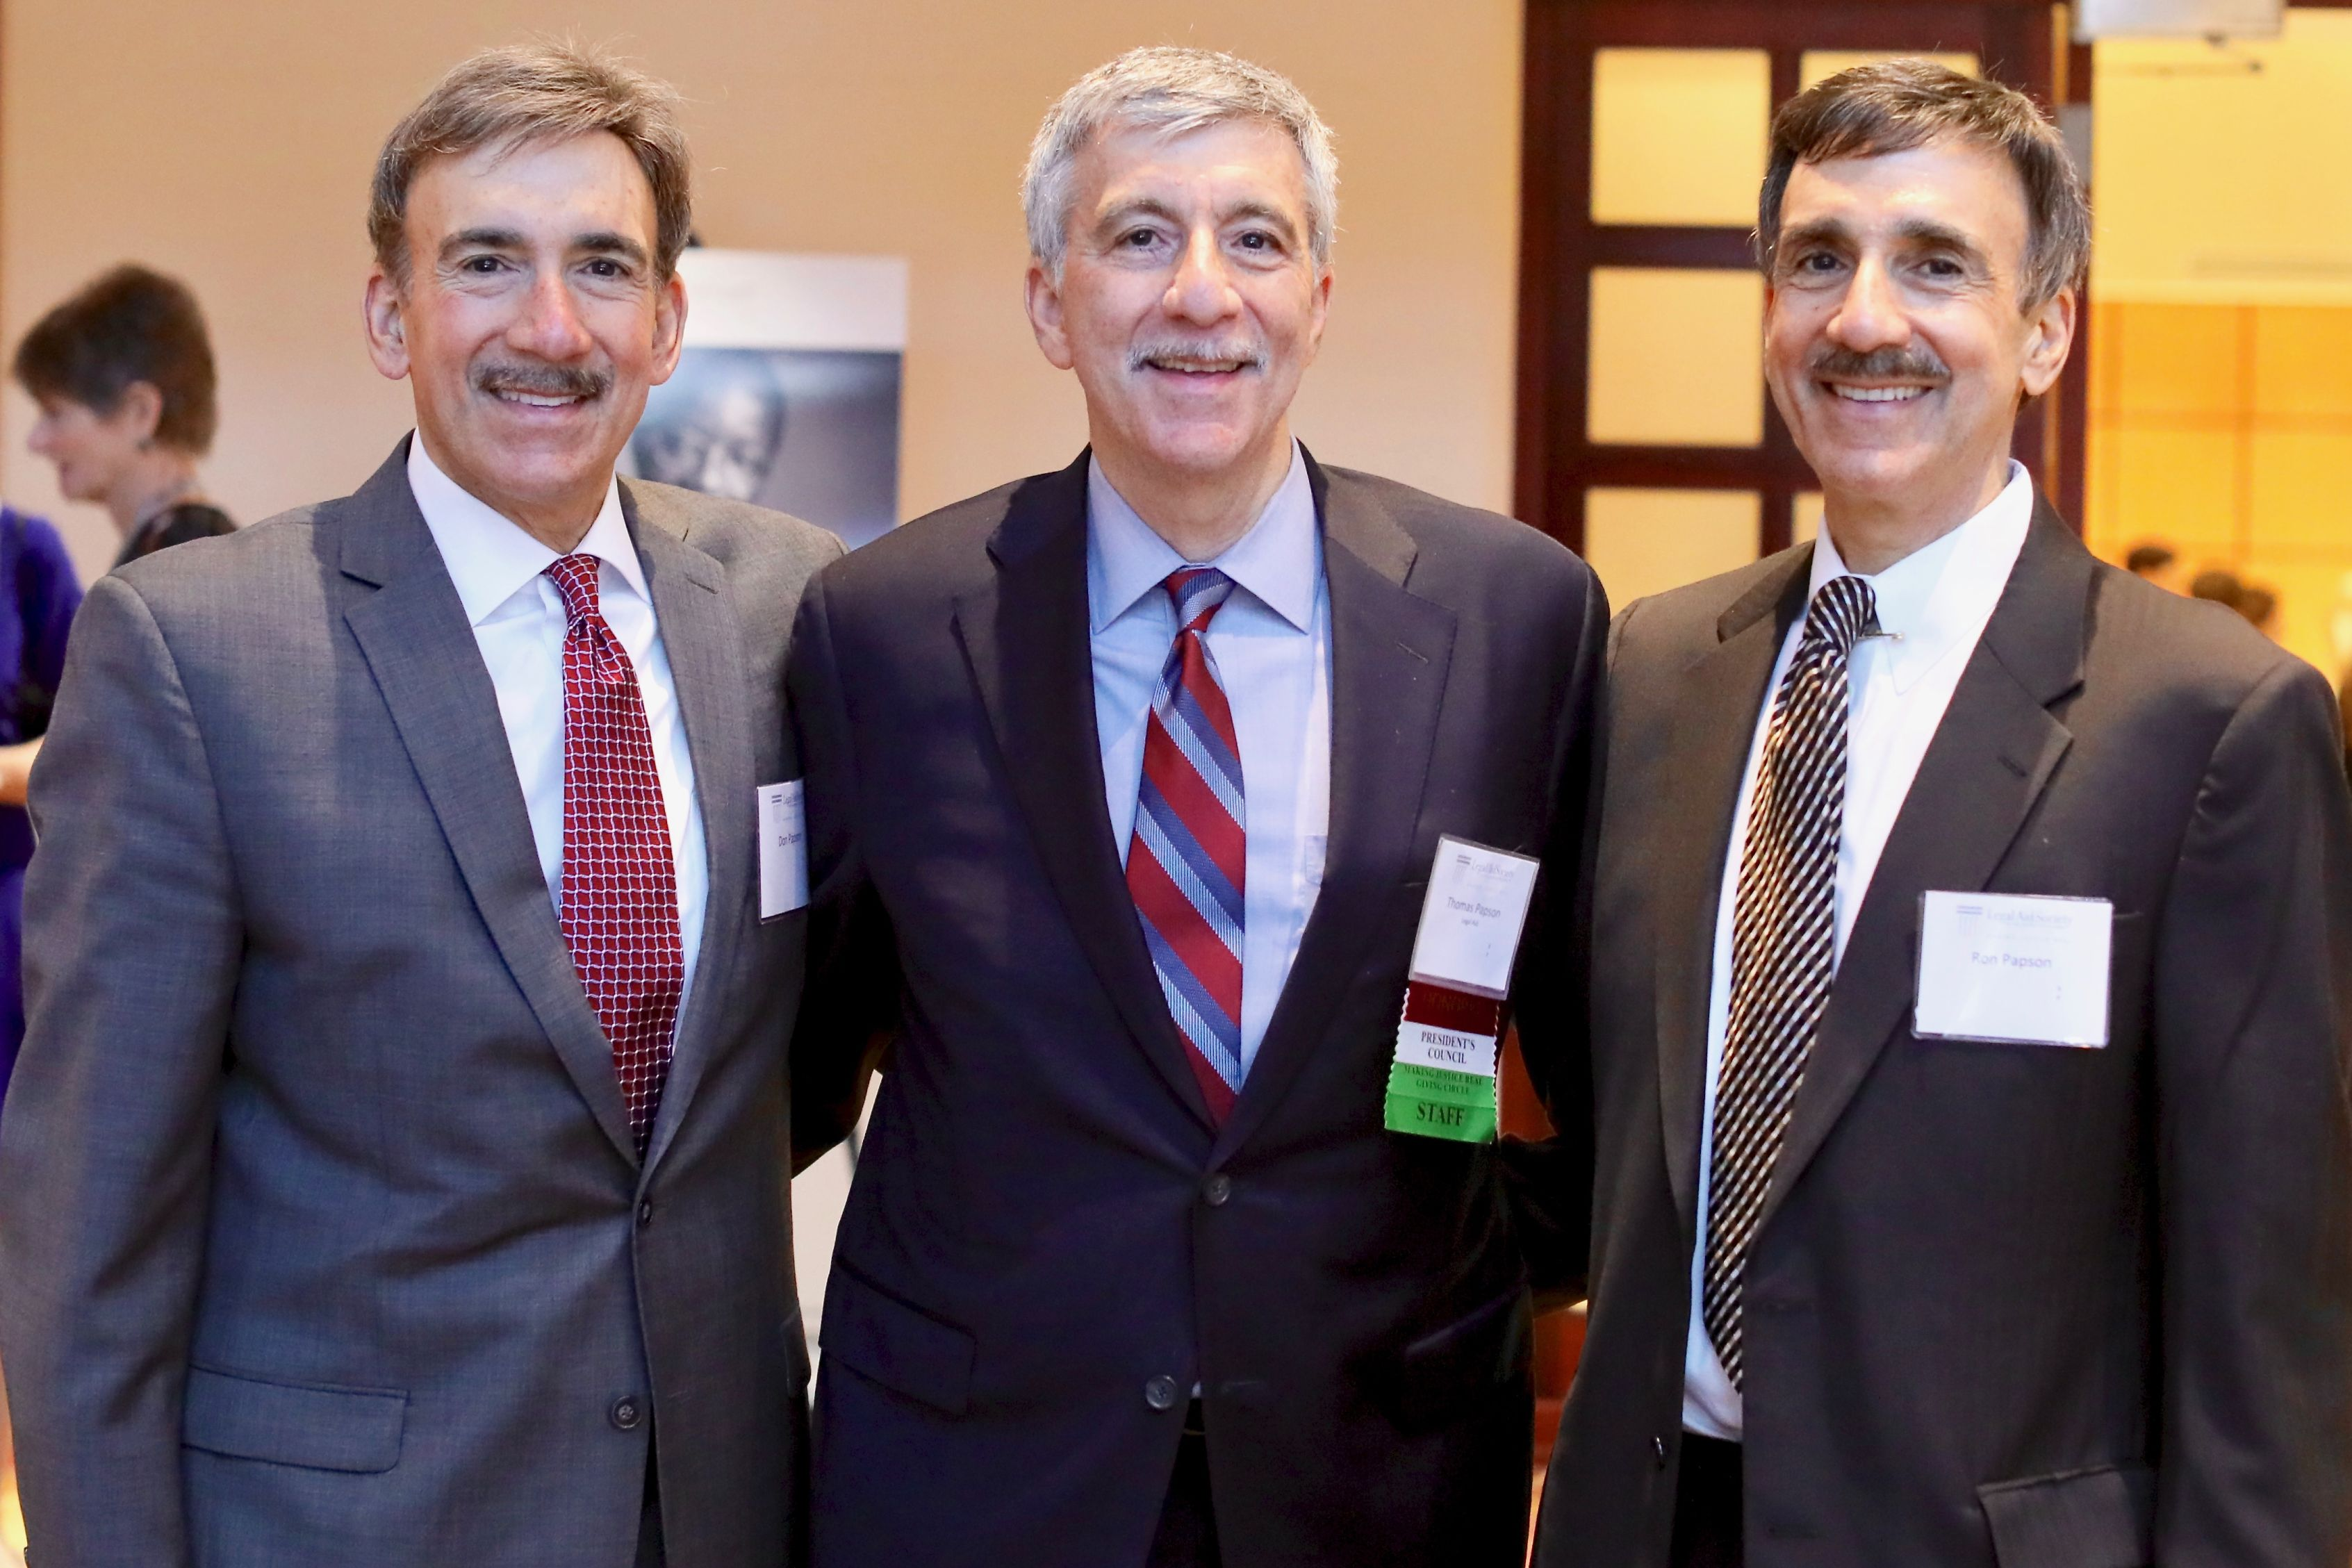 Servant of Justice Honoree Tom Papson with his twin brothers, Don and Ron